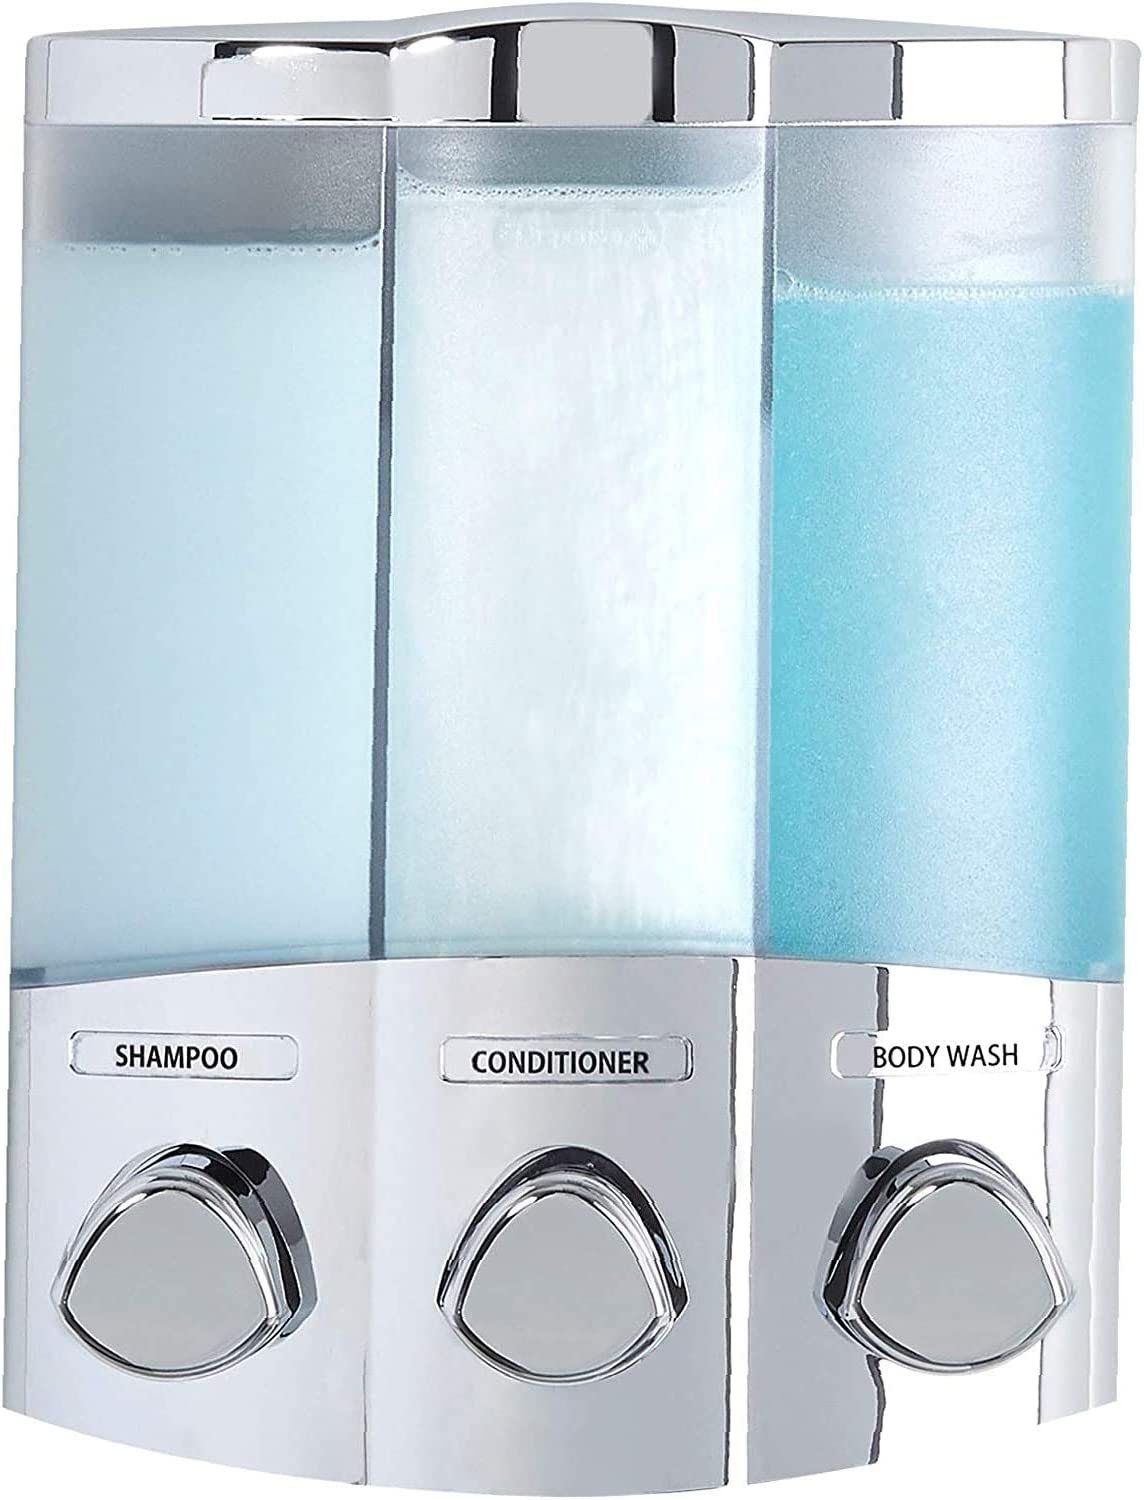 Better Living Products 76344-1 Euro Series Trio 3-Chamber Soap and Dispenser, Chrome - 1 Pack